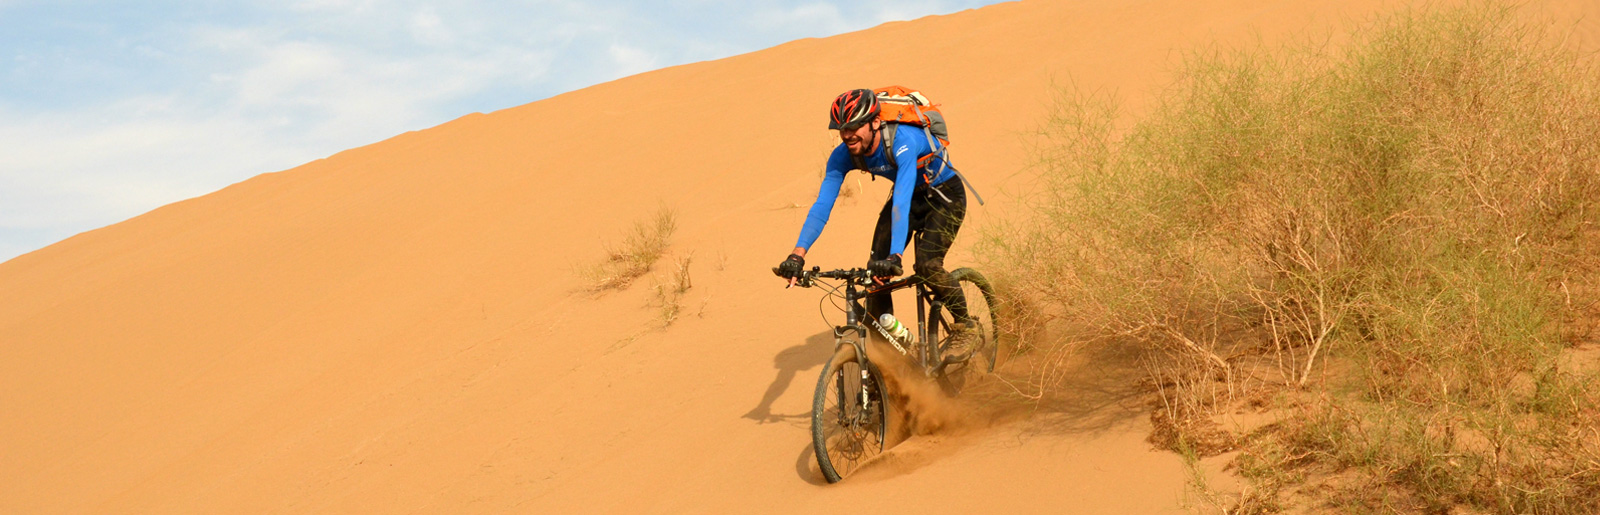 Biking in Central Desert of Iran